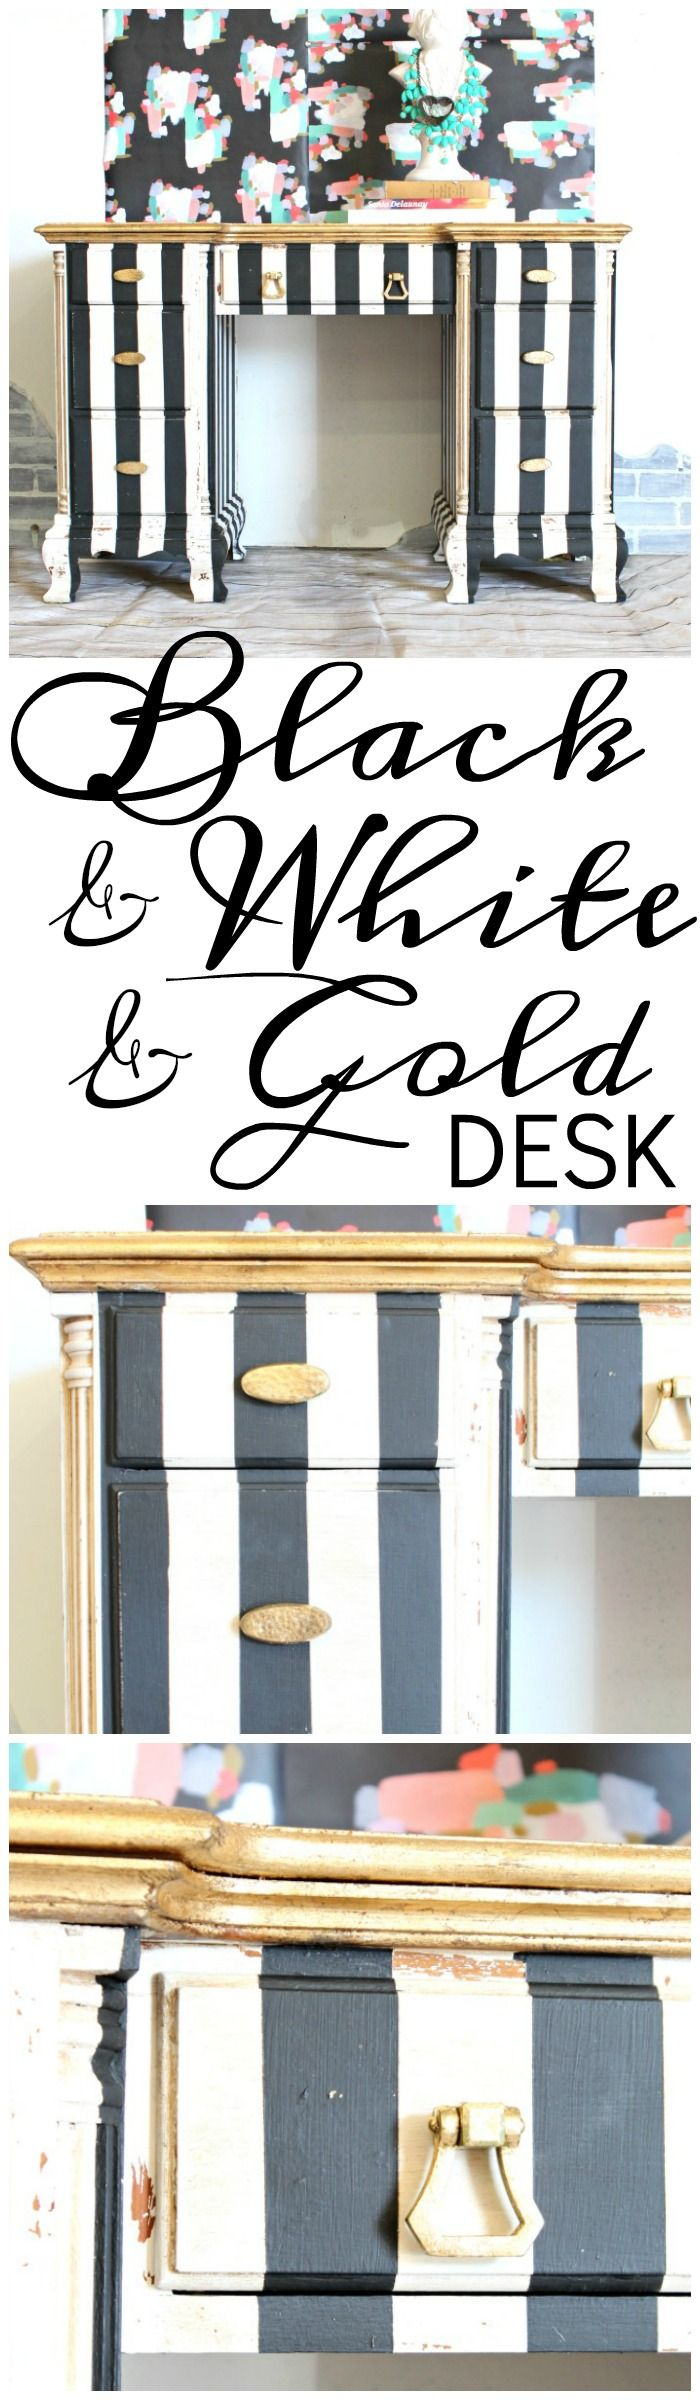 Black & White & Gold Painted Striped Desk - Refunk My Junk